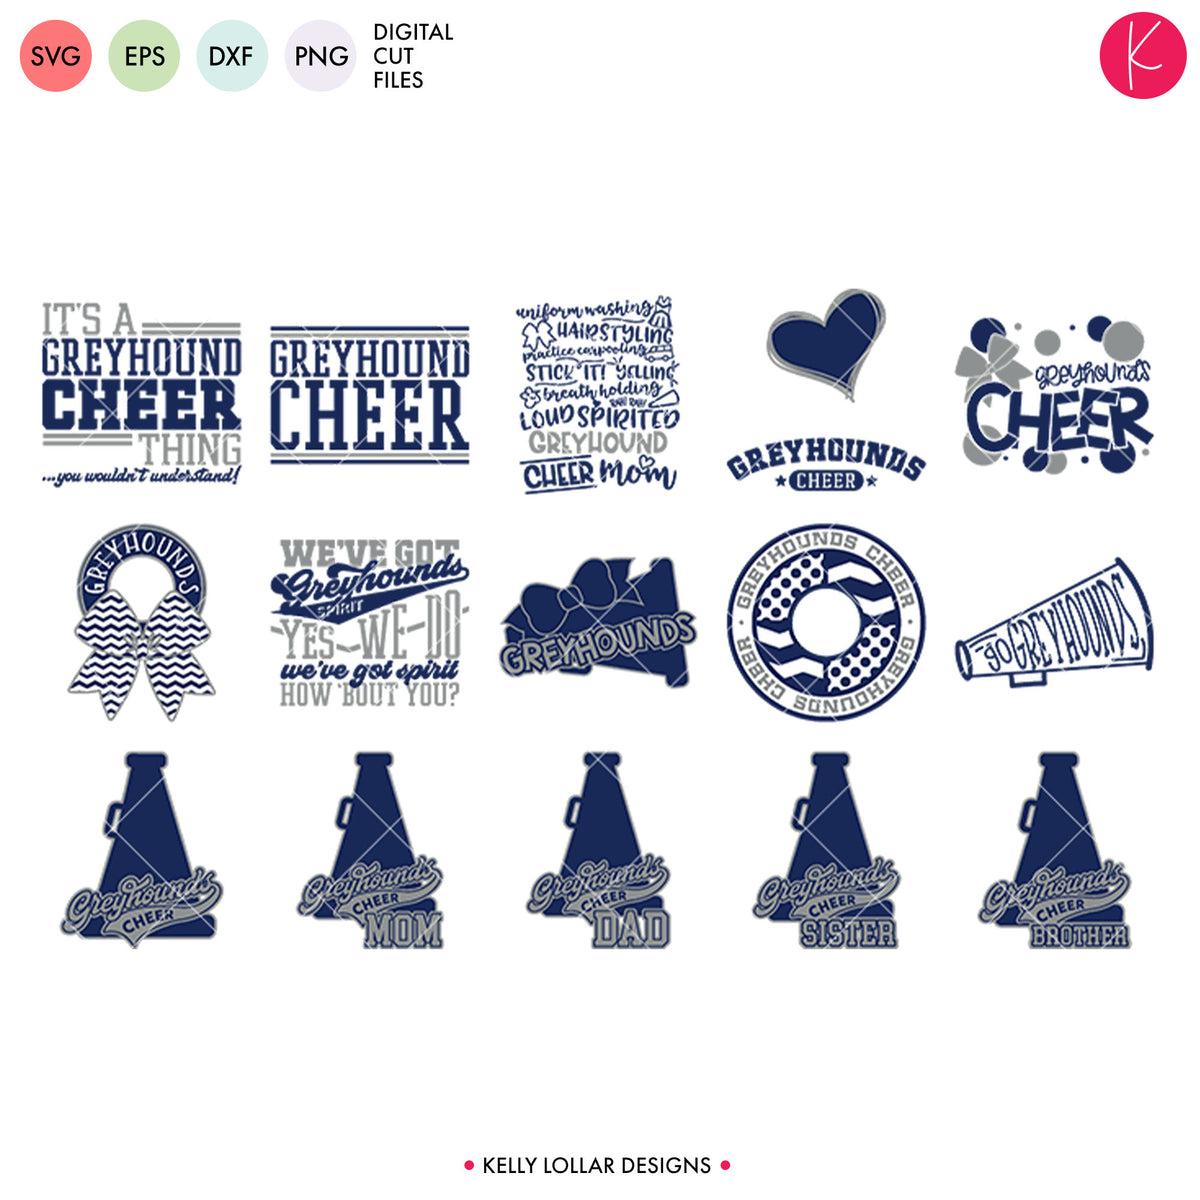 Greyhounds Cheer Bundle | SVG DXFEPS PNG Cut Files